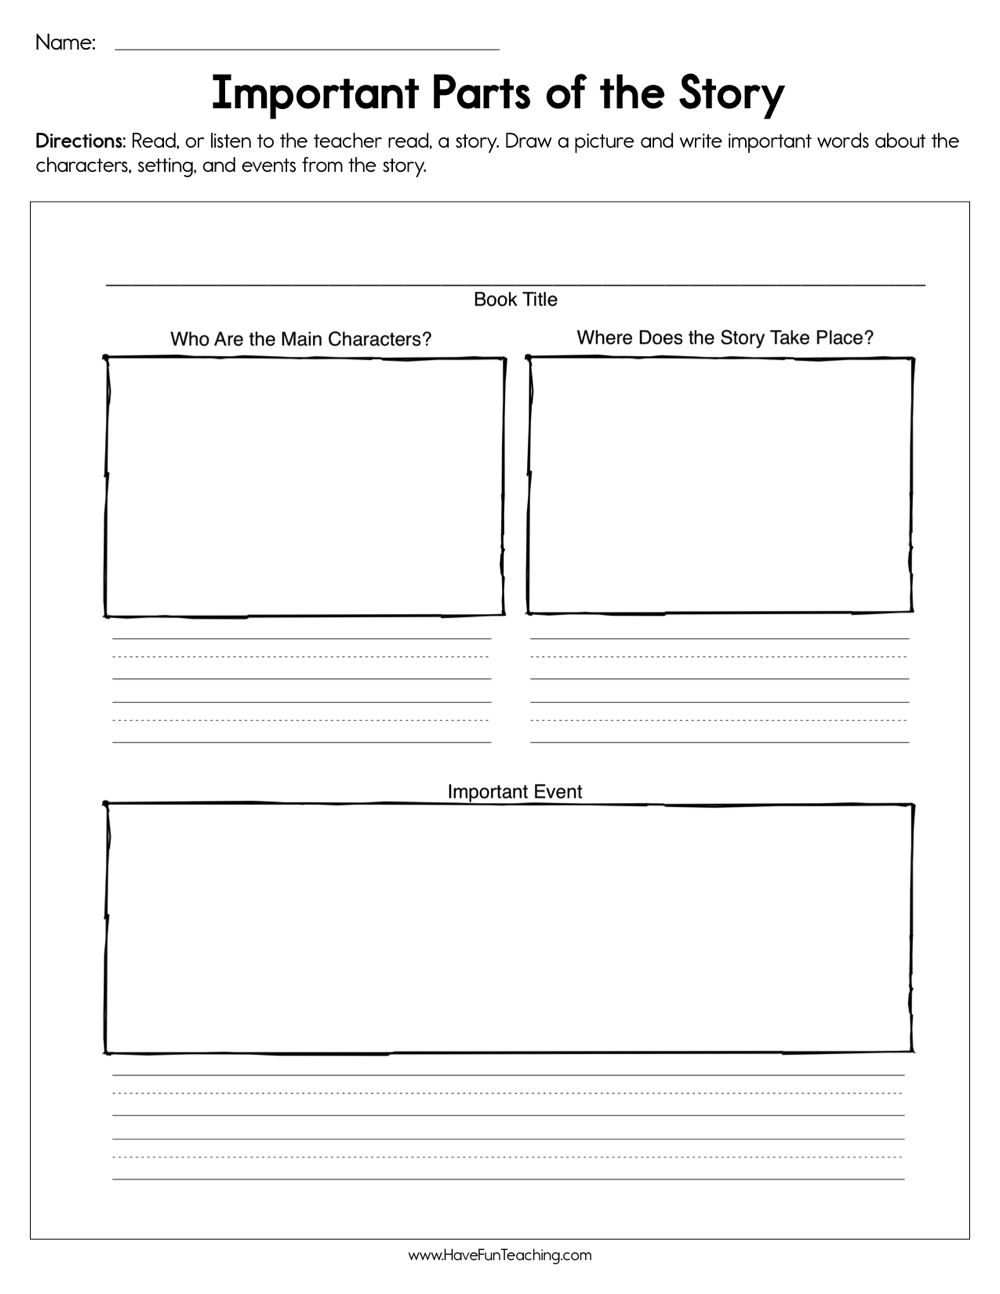 Important Parts of the Story Worksheet